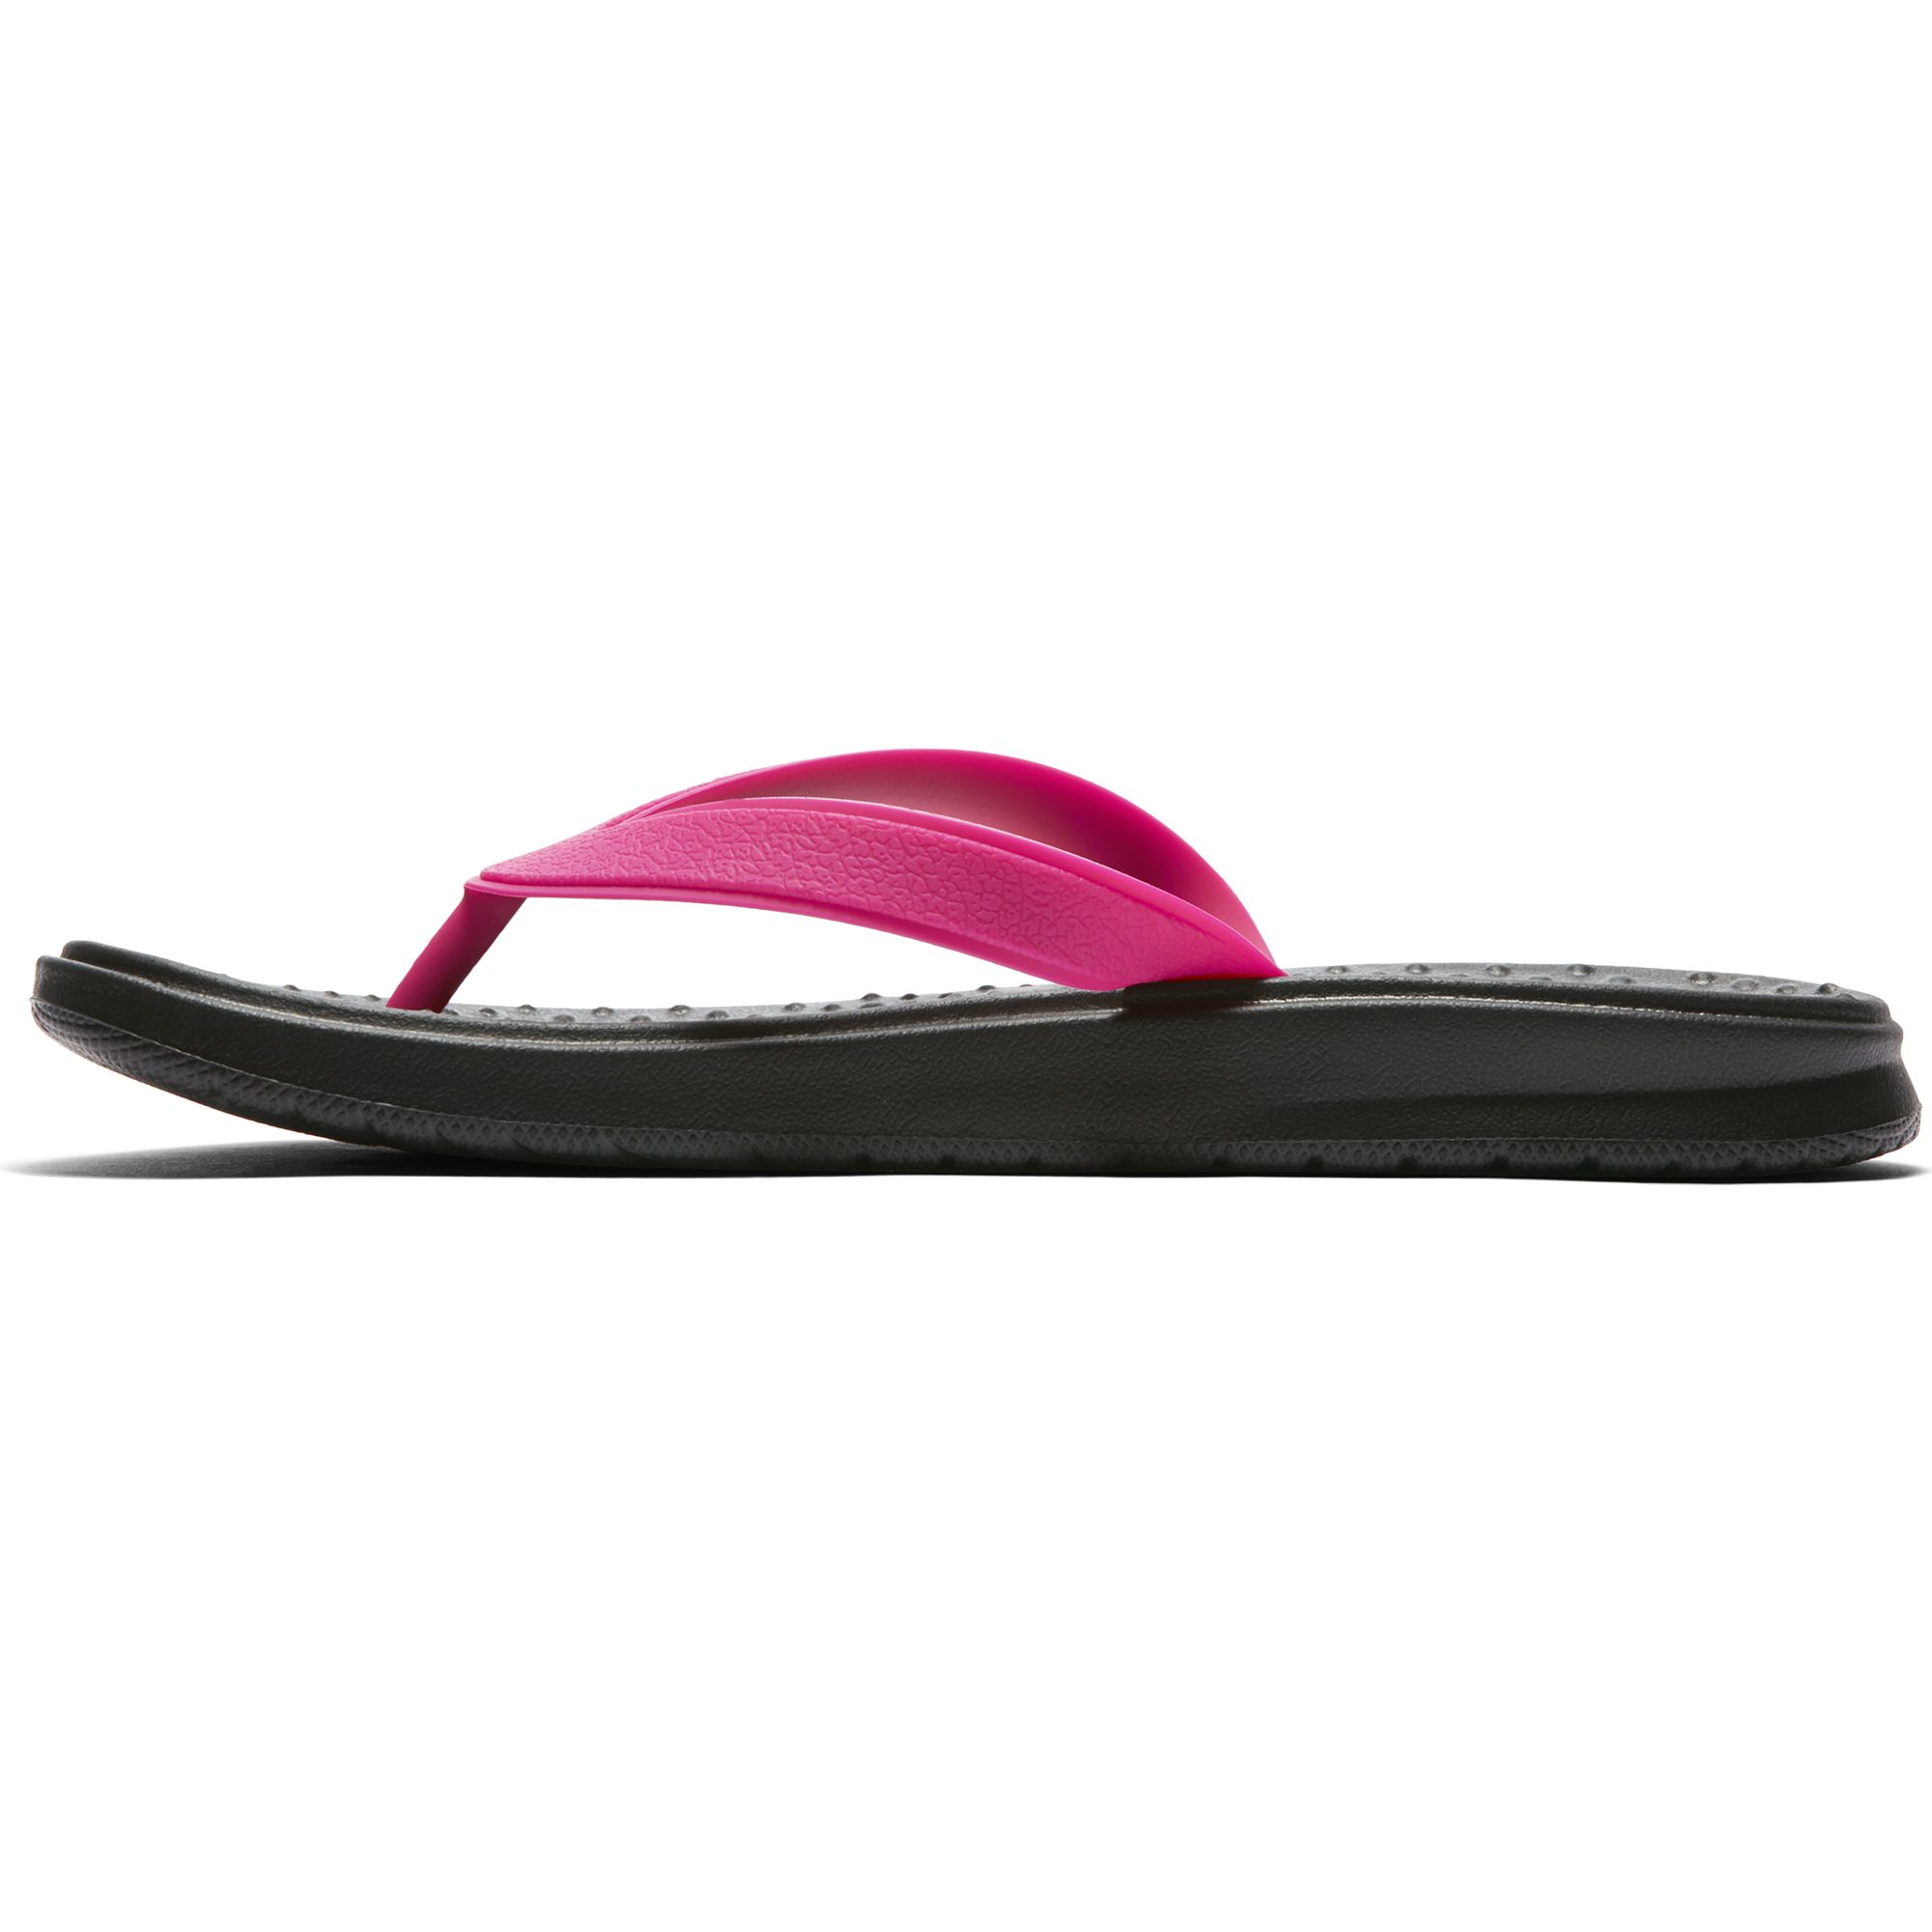 W Solay Thong Black/pink, , large